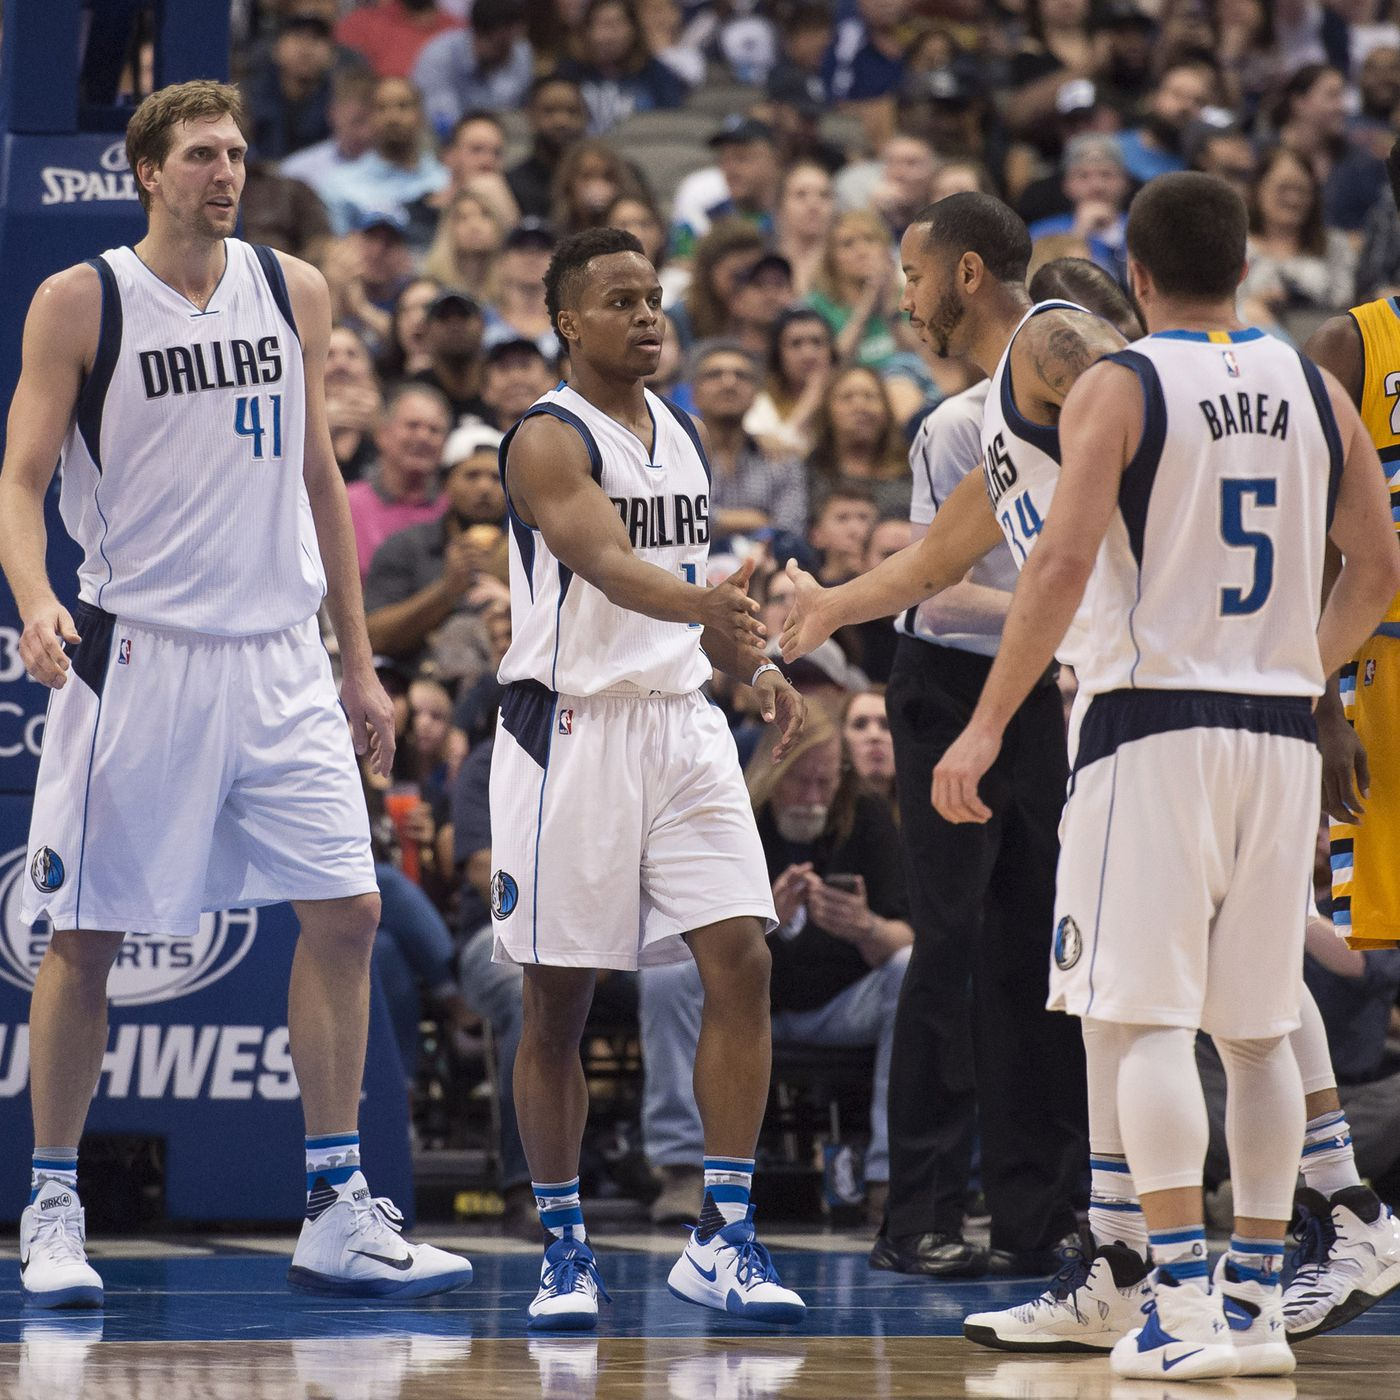 The Mavericks' most effective lineup may also be your least